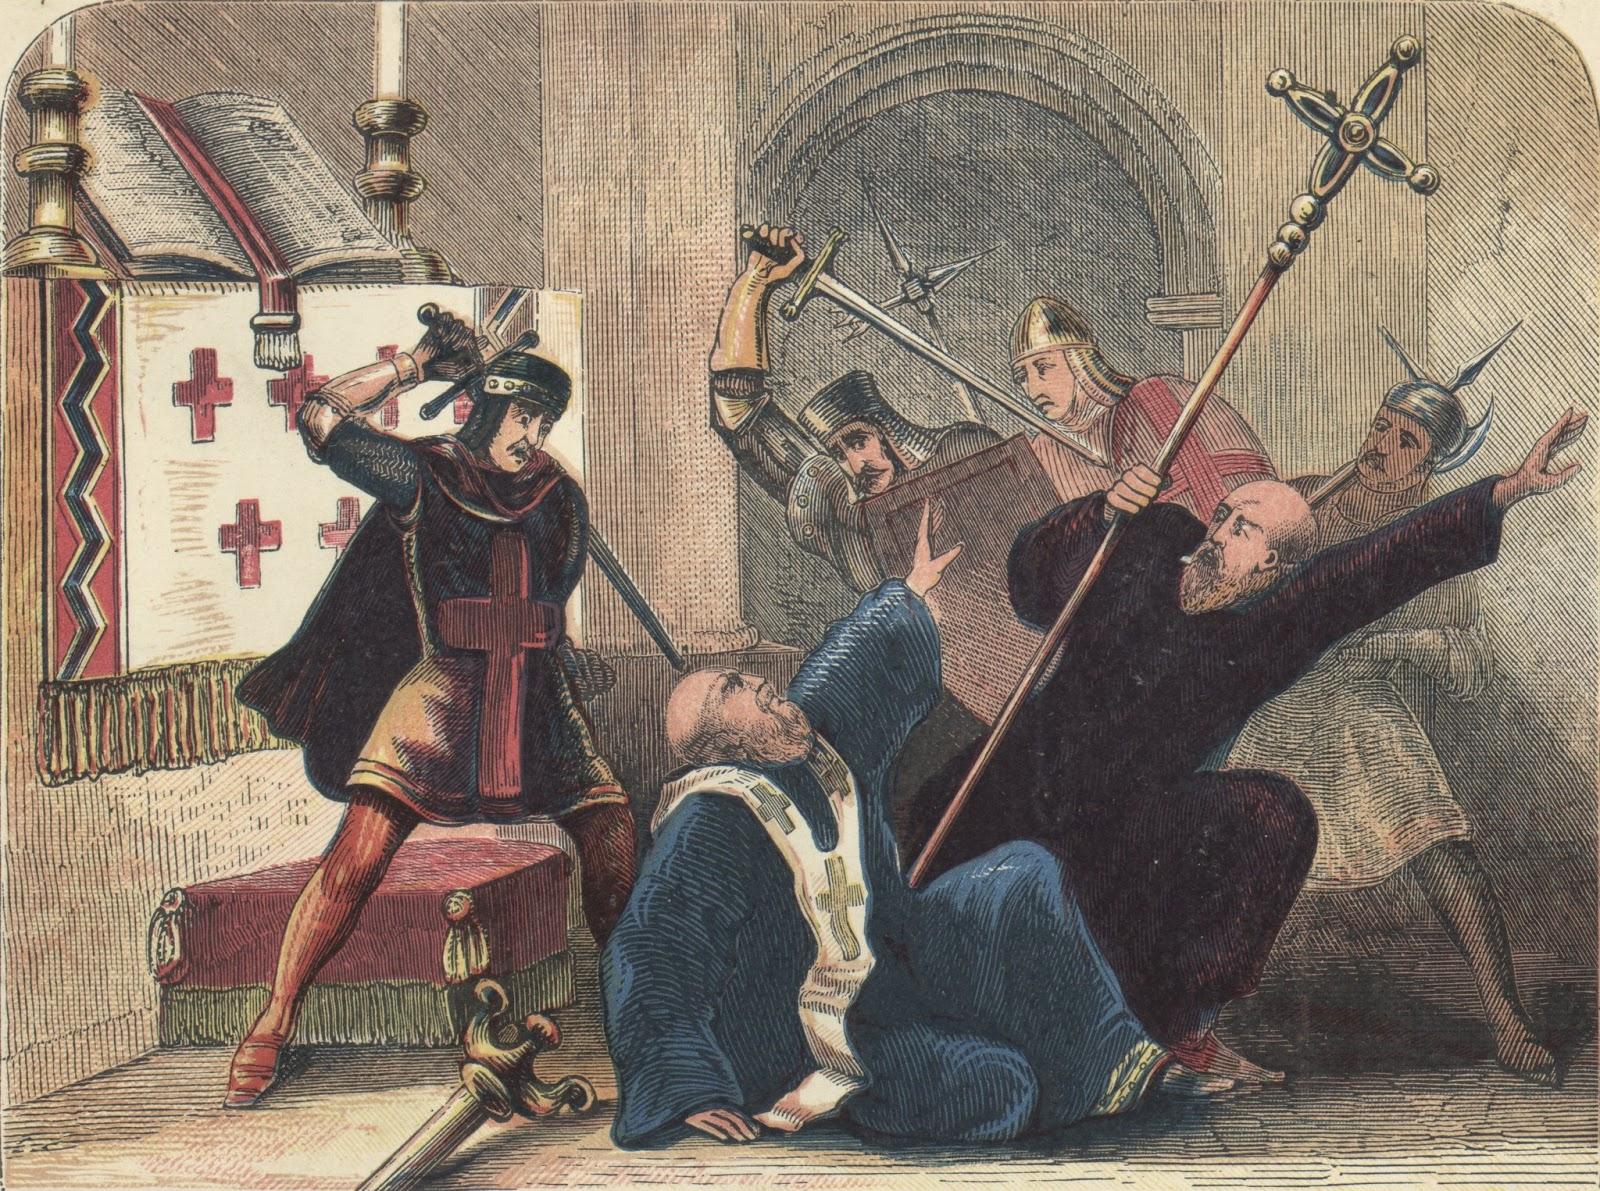 an analysis of the life and death of saint thomas becket Life and death thomas becket was originally a close friend of henry ii in fact, henry appointed thomas to be the archbishop of canterbury, although thomas told him that this appointment would.